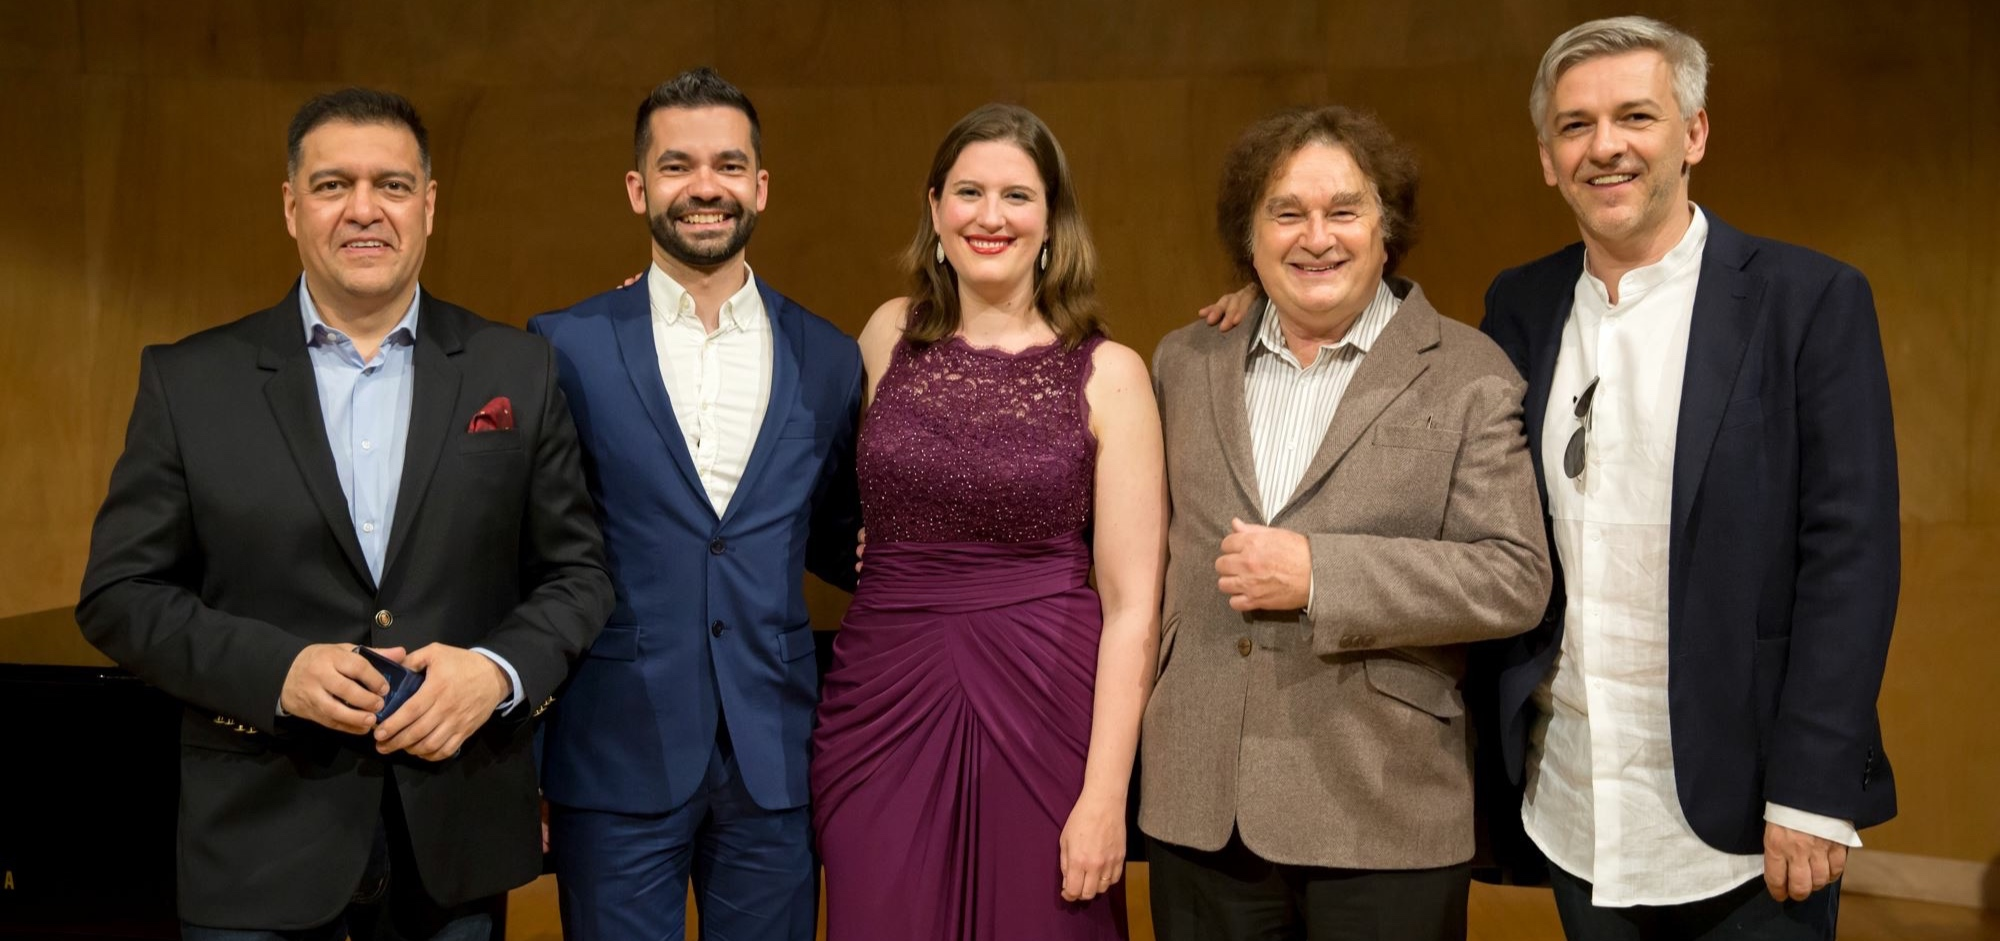 Award ceremony in April 2018 in Paris. Left to right: Xavier Rivadeneira (MusartEH Foundation), yours truly, Katharine Dain (Donna Anna), Michael Meissner (Cuenca Symphony Orchestra), Robert Alföldi (director)